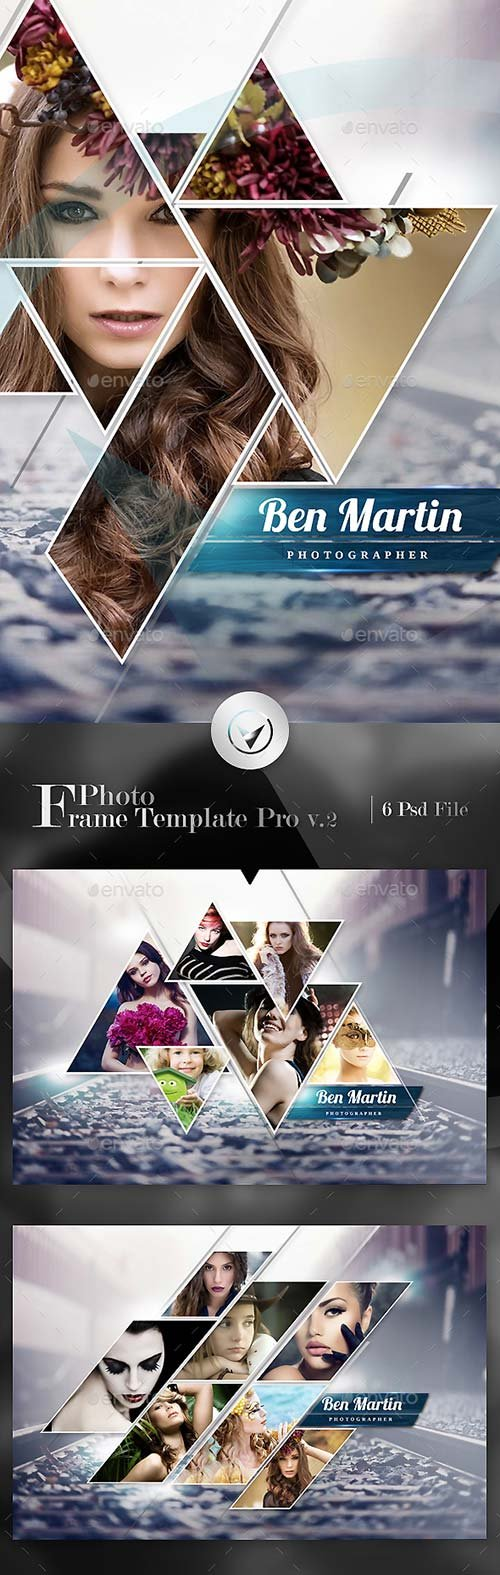 GraphicRiver Photo Frame Template Pro v.2